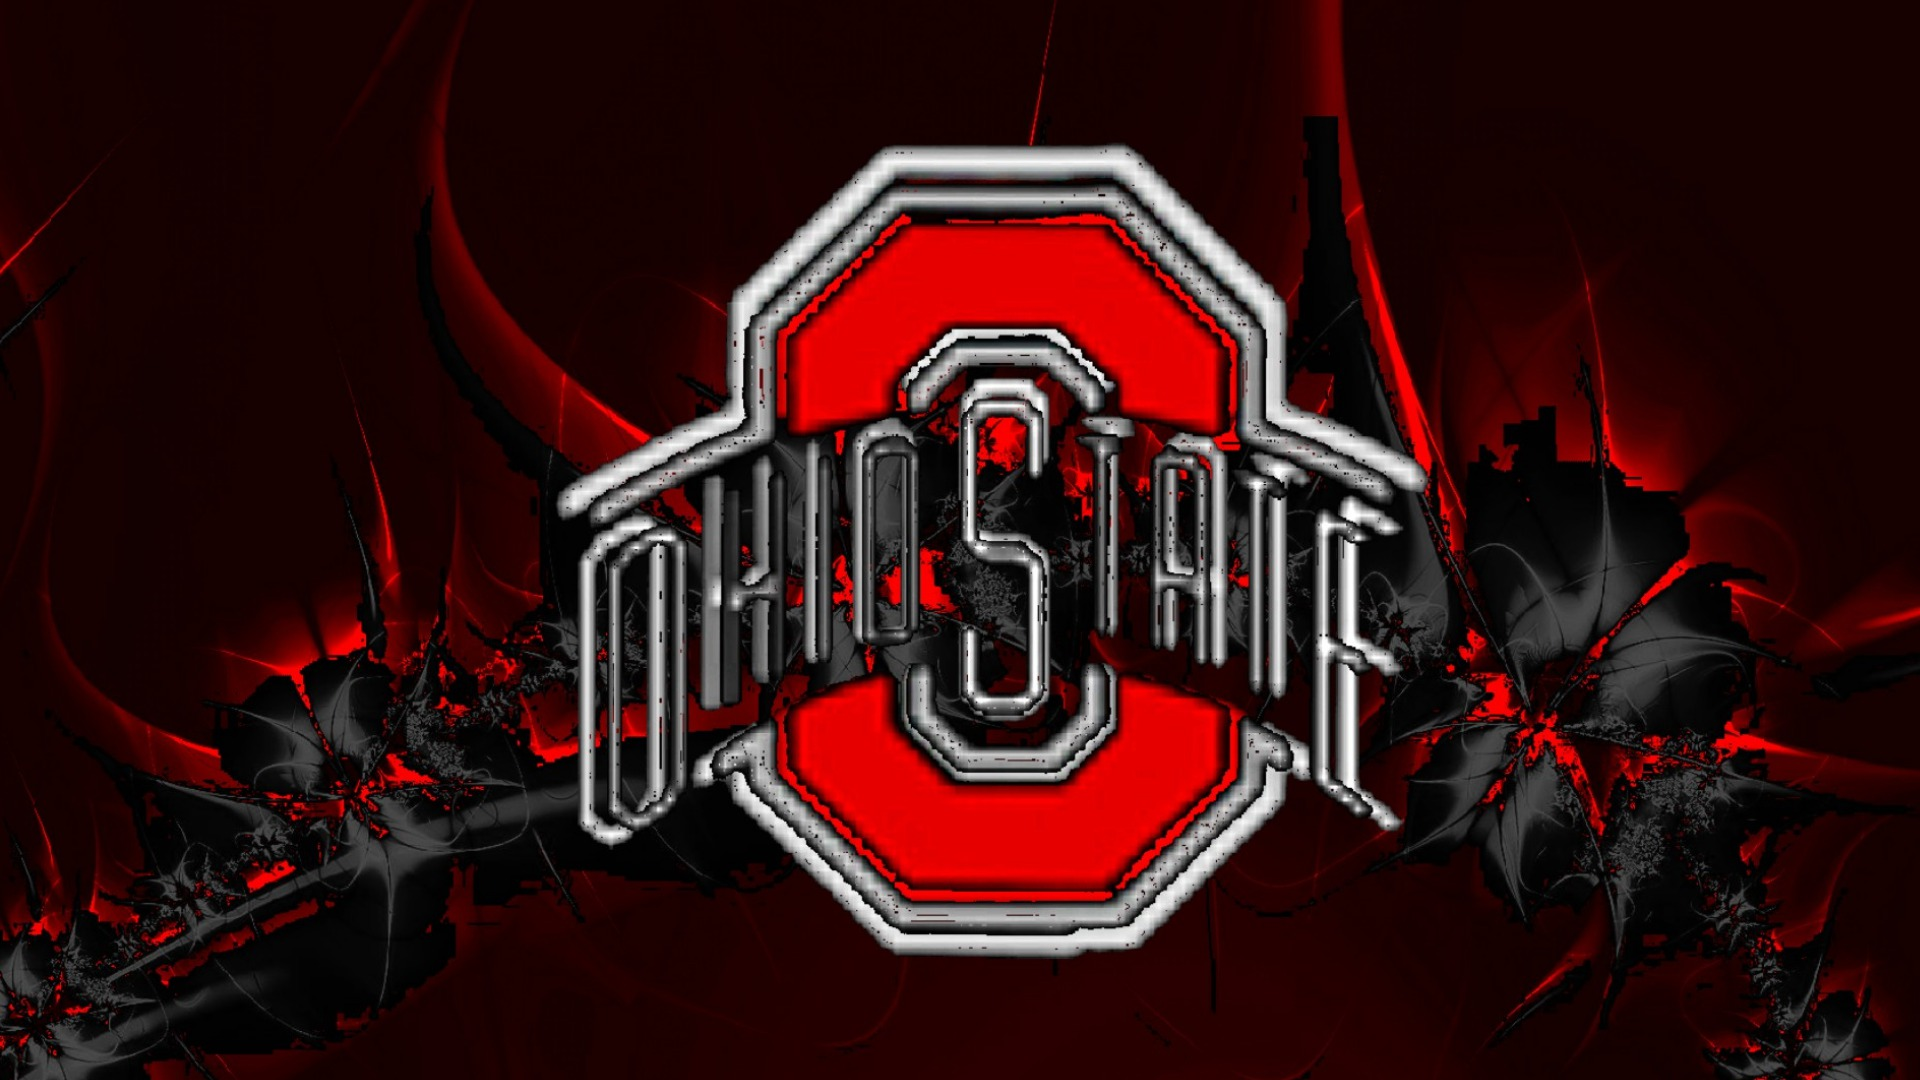 Ohio State WallPaper